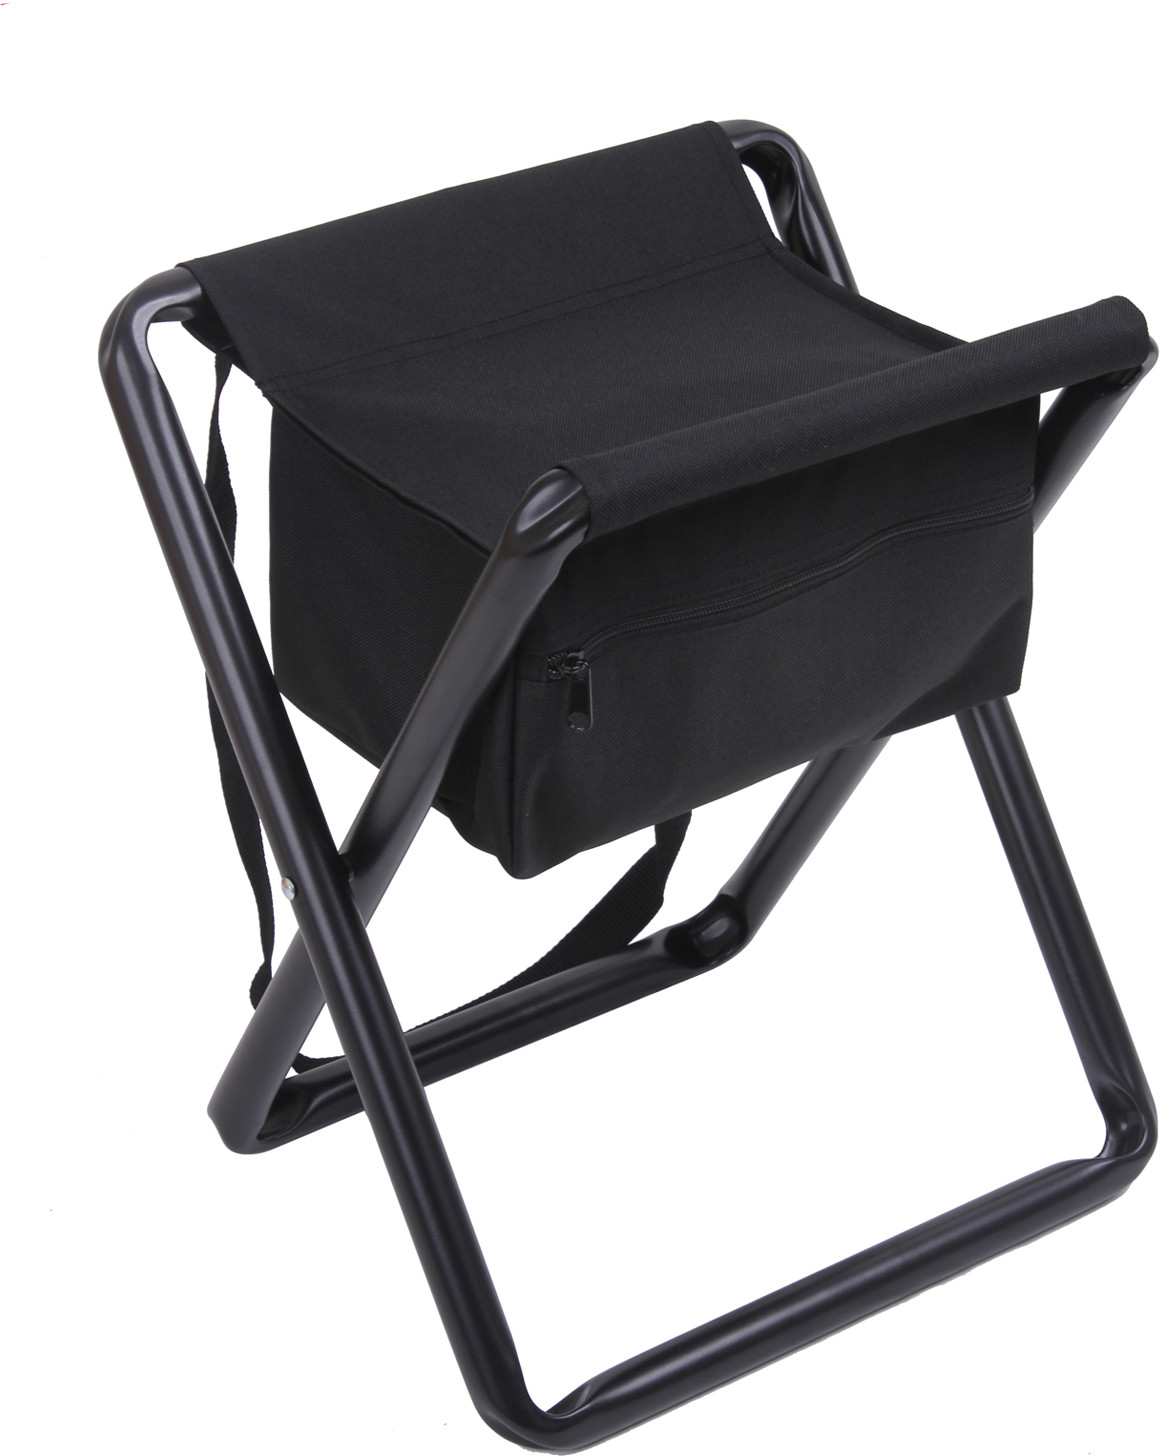 Collapsible Chair Black Deluxe Folding Chair Stool With Storage Pouch